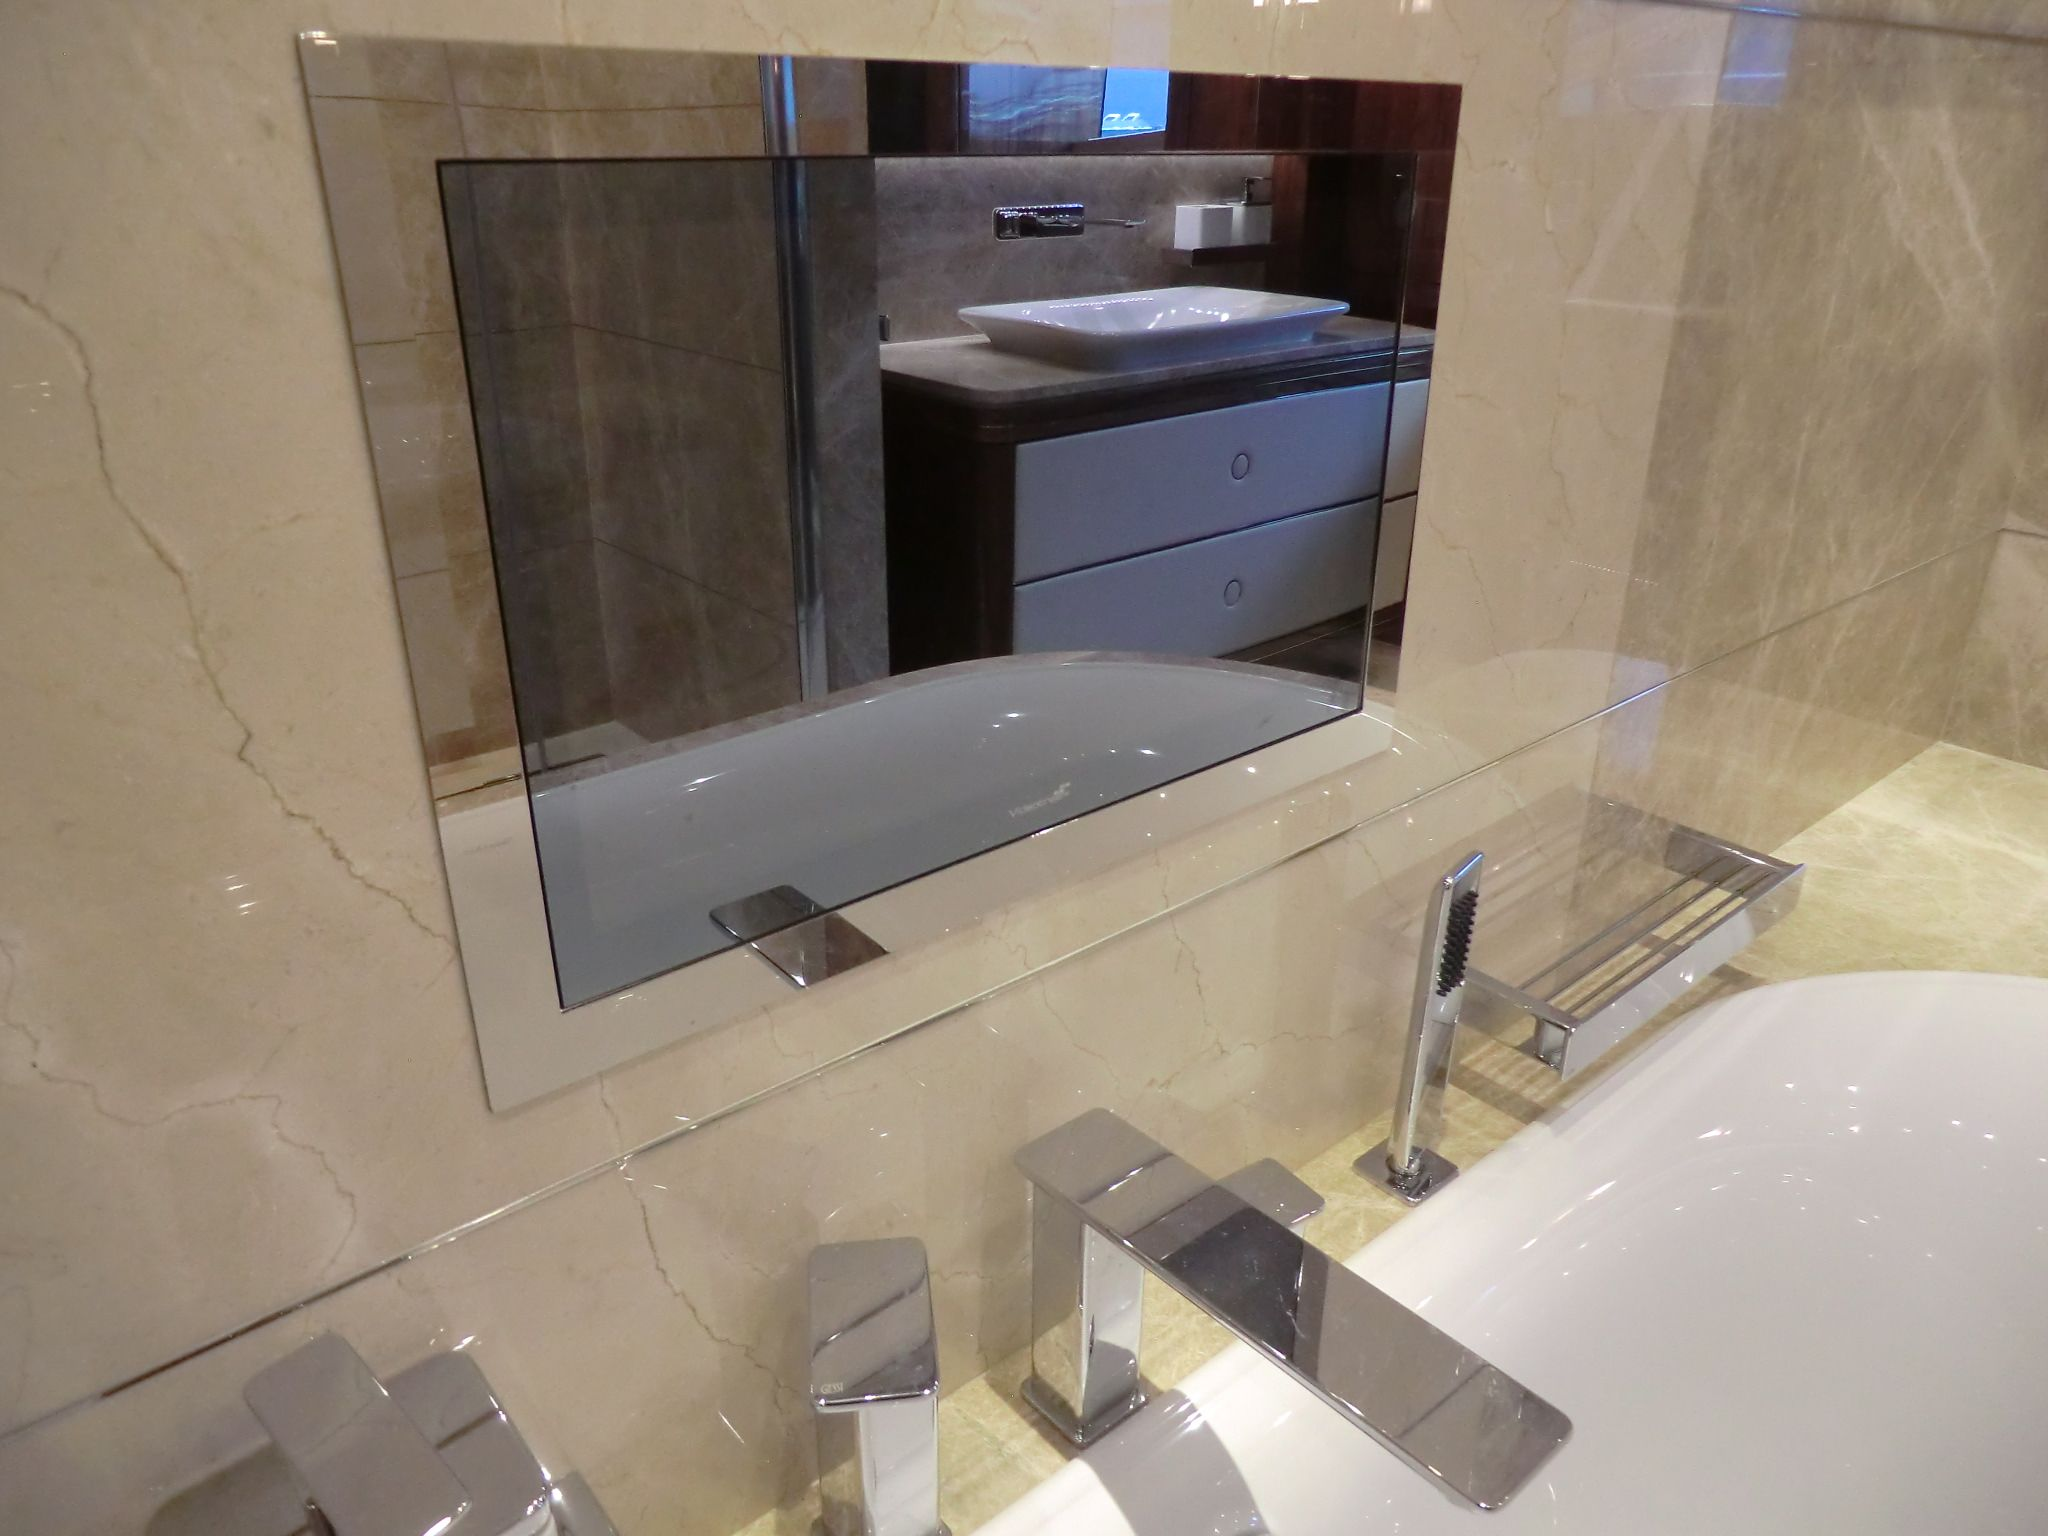 Videotree Waterproof Bathroom Tv In Sunseeker Princess Avk Yacht